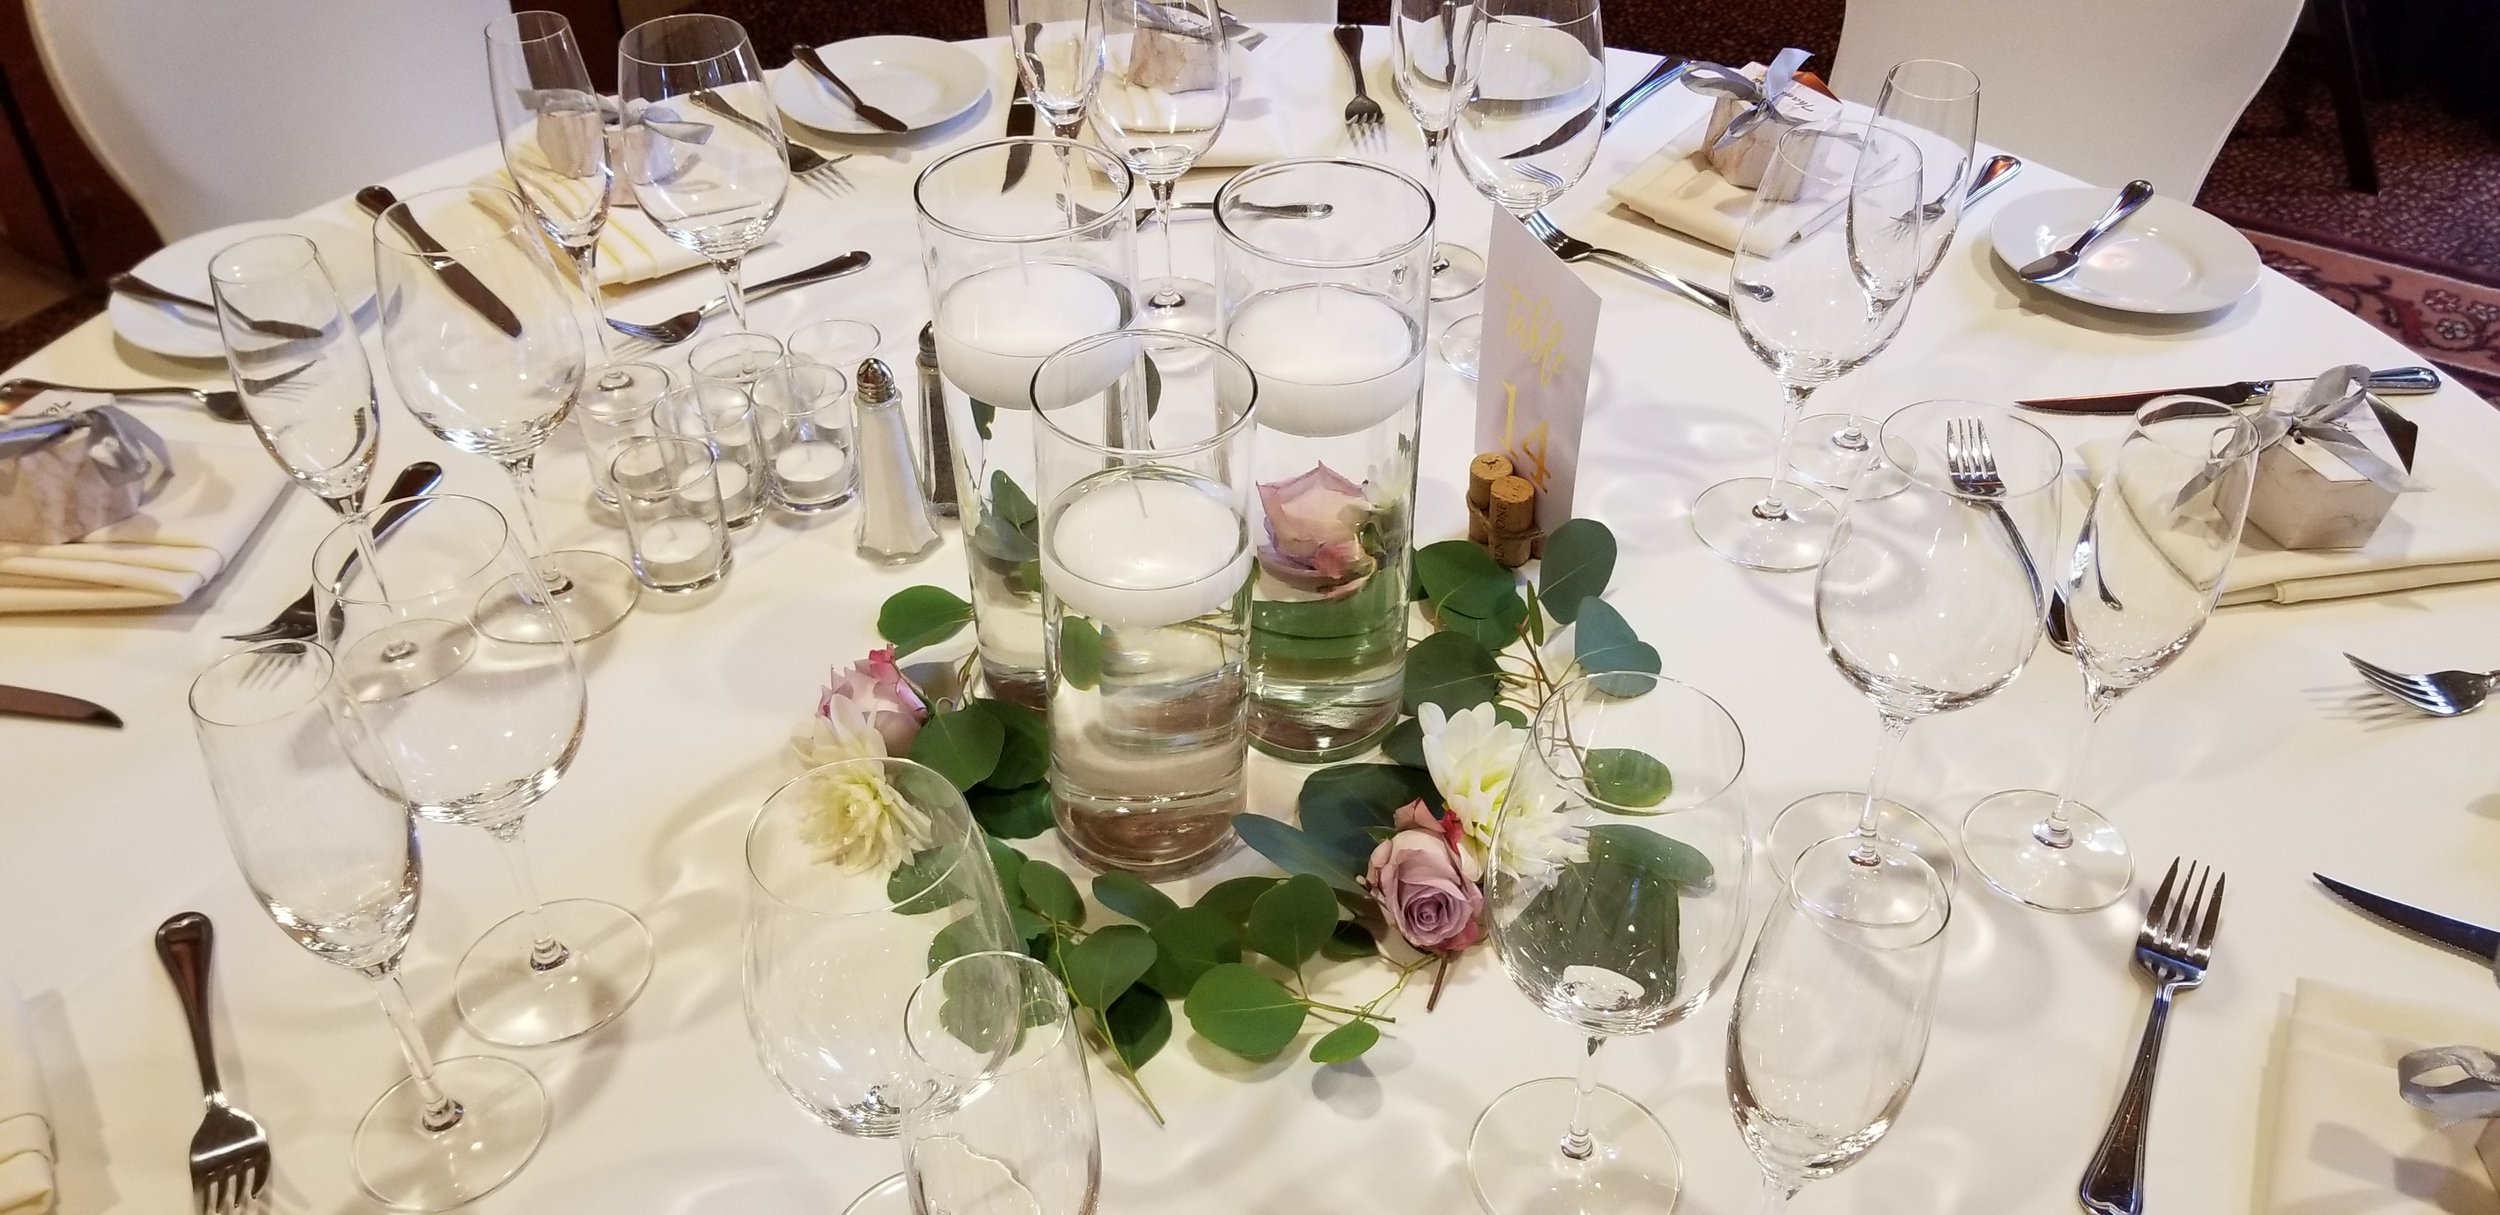 Trio of glass pillars with floating candles and greenery base